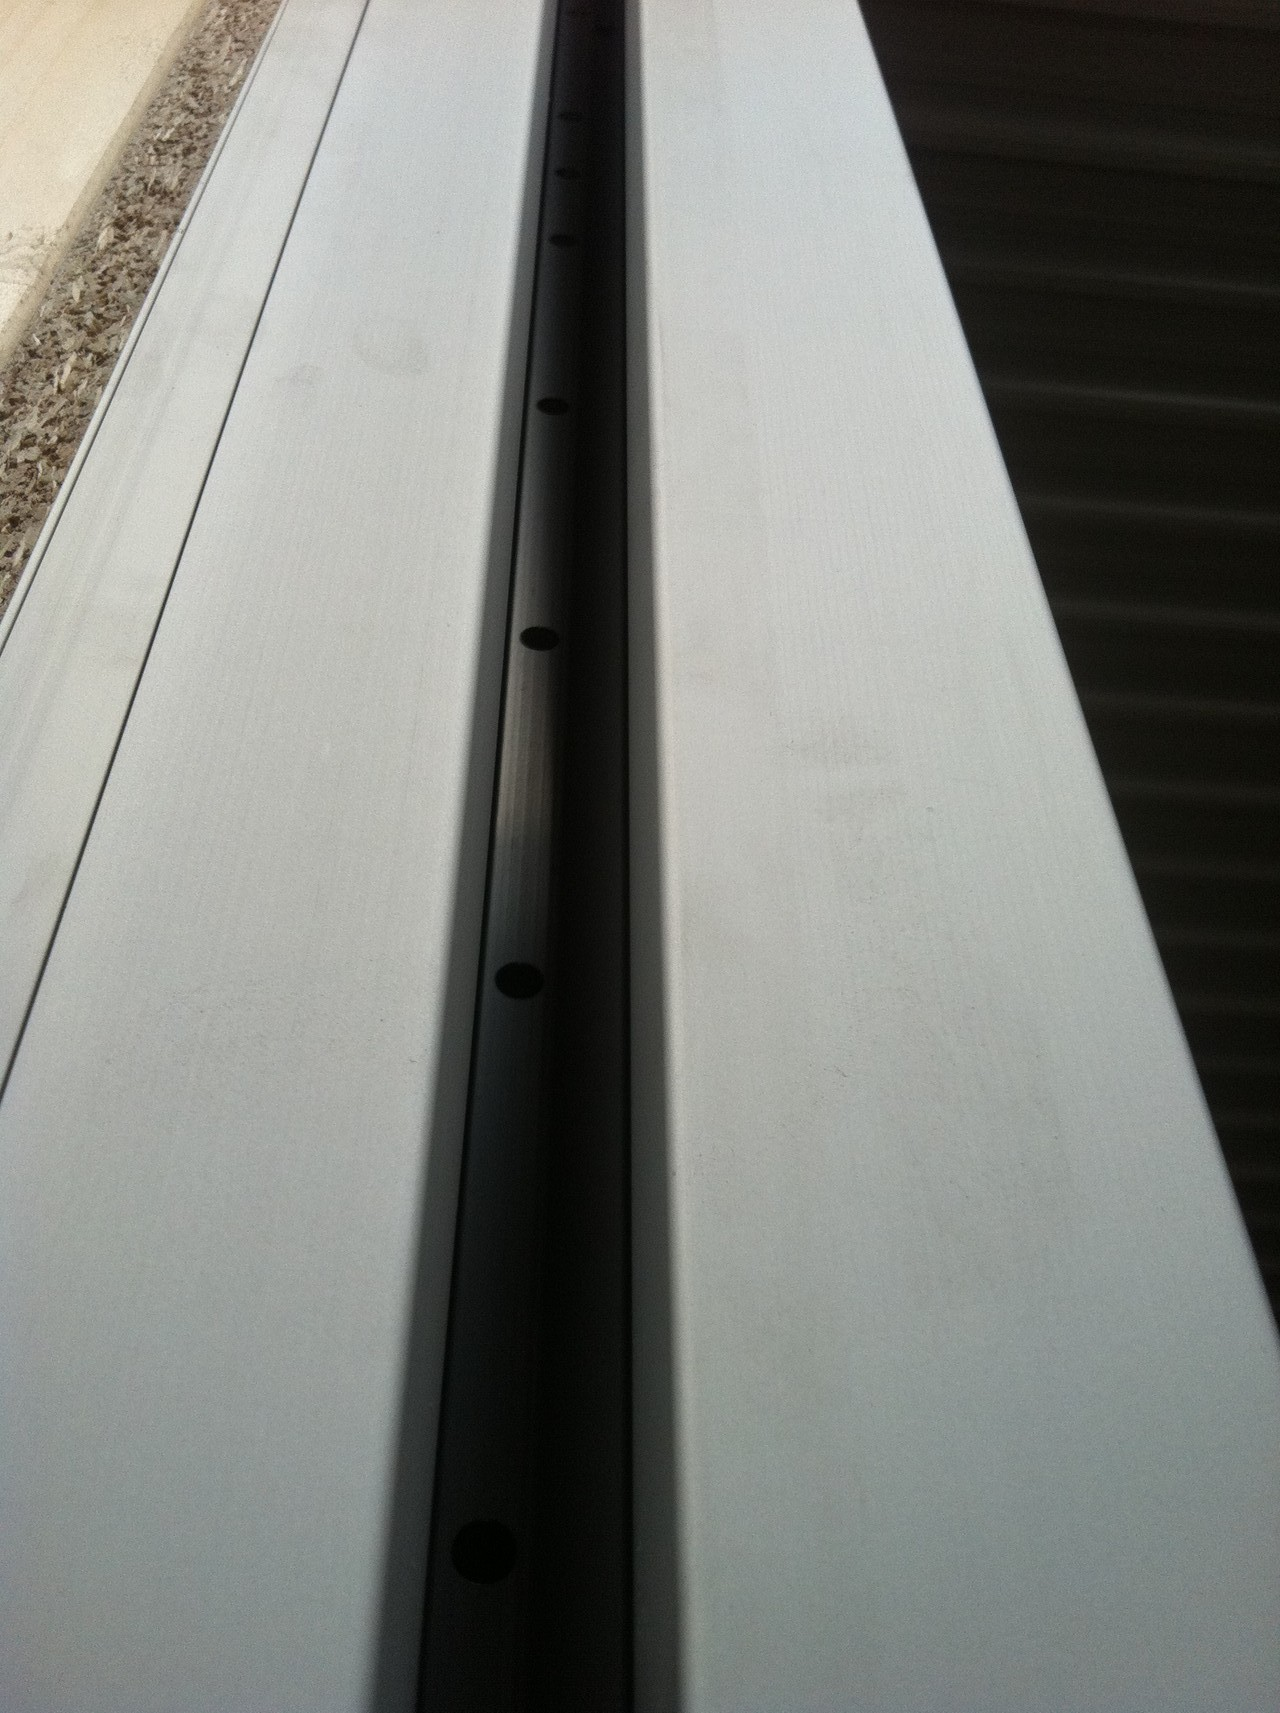 Light-curtain included in side-columns